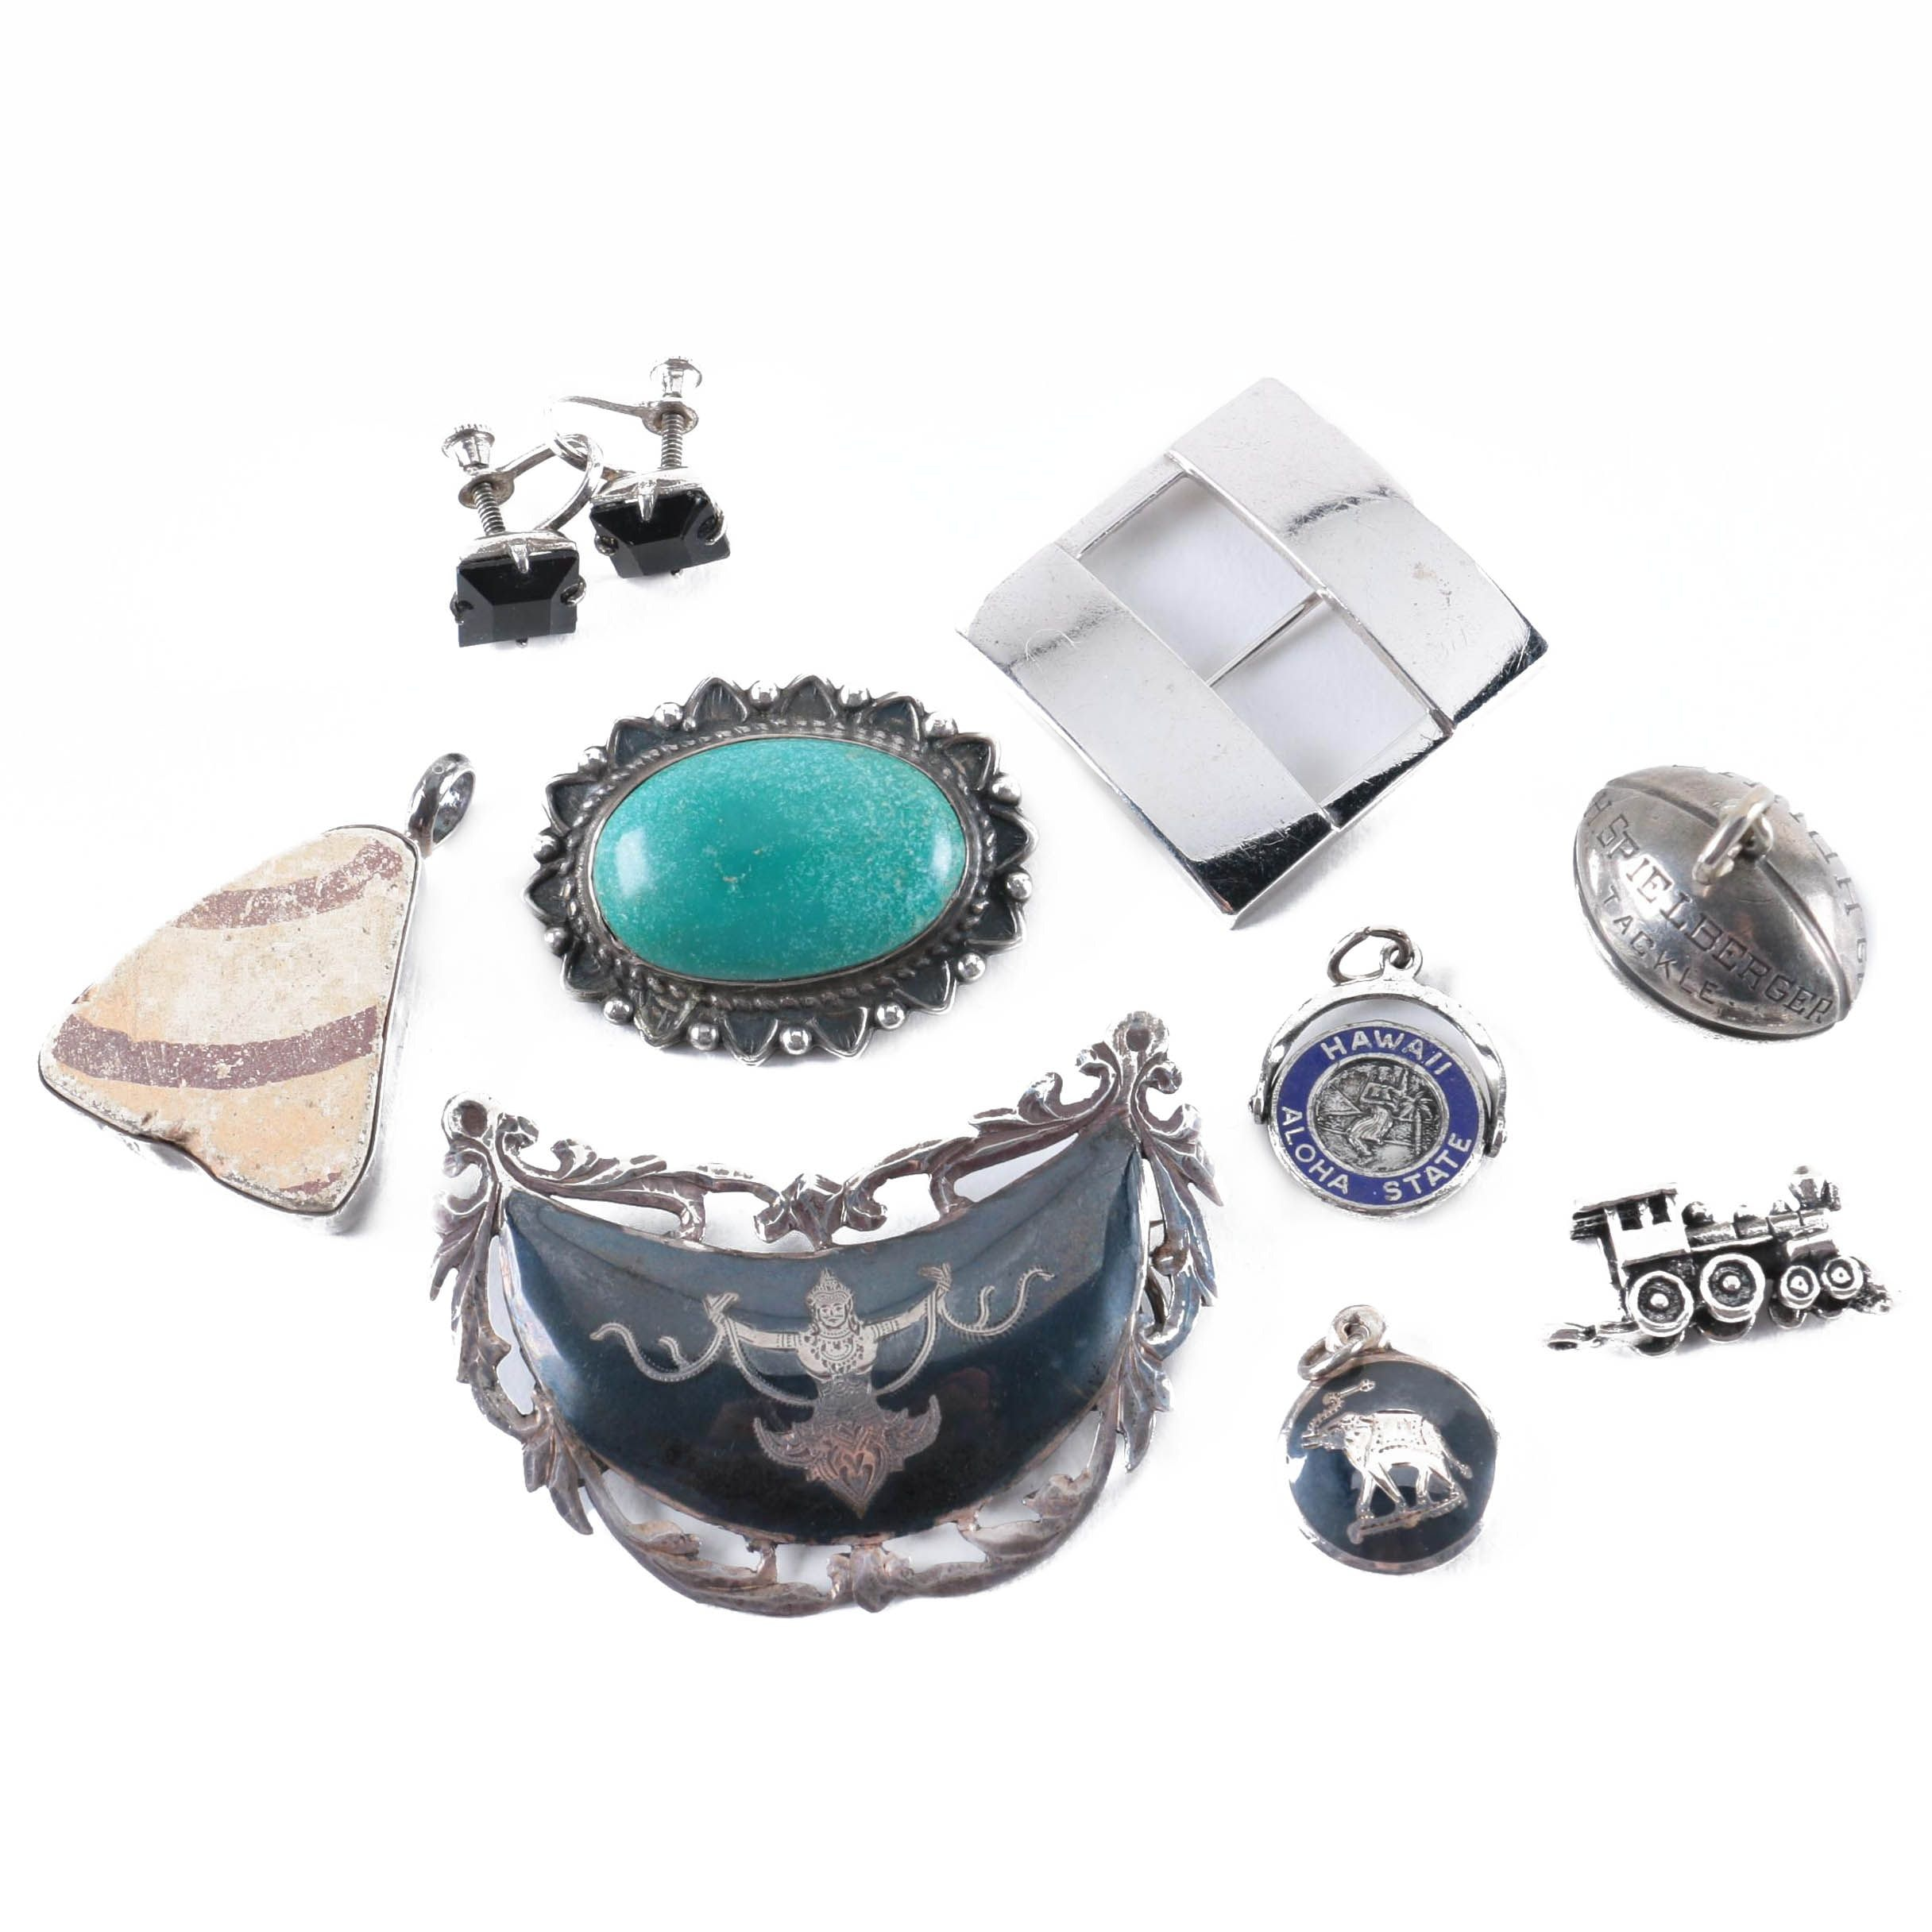 Sterling Silver Turquoise Brooch, Pottery Shard Pendant and Thai Nakon Jewelry